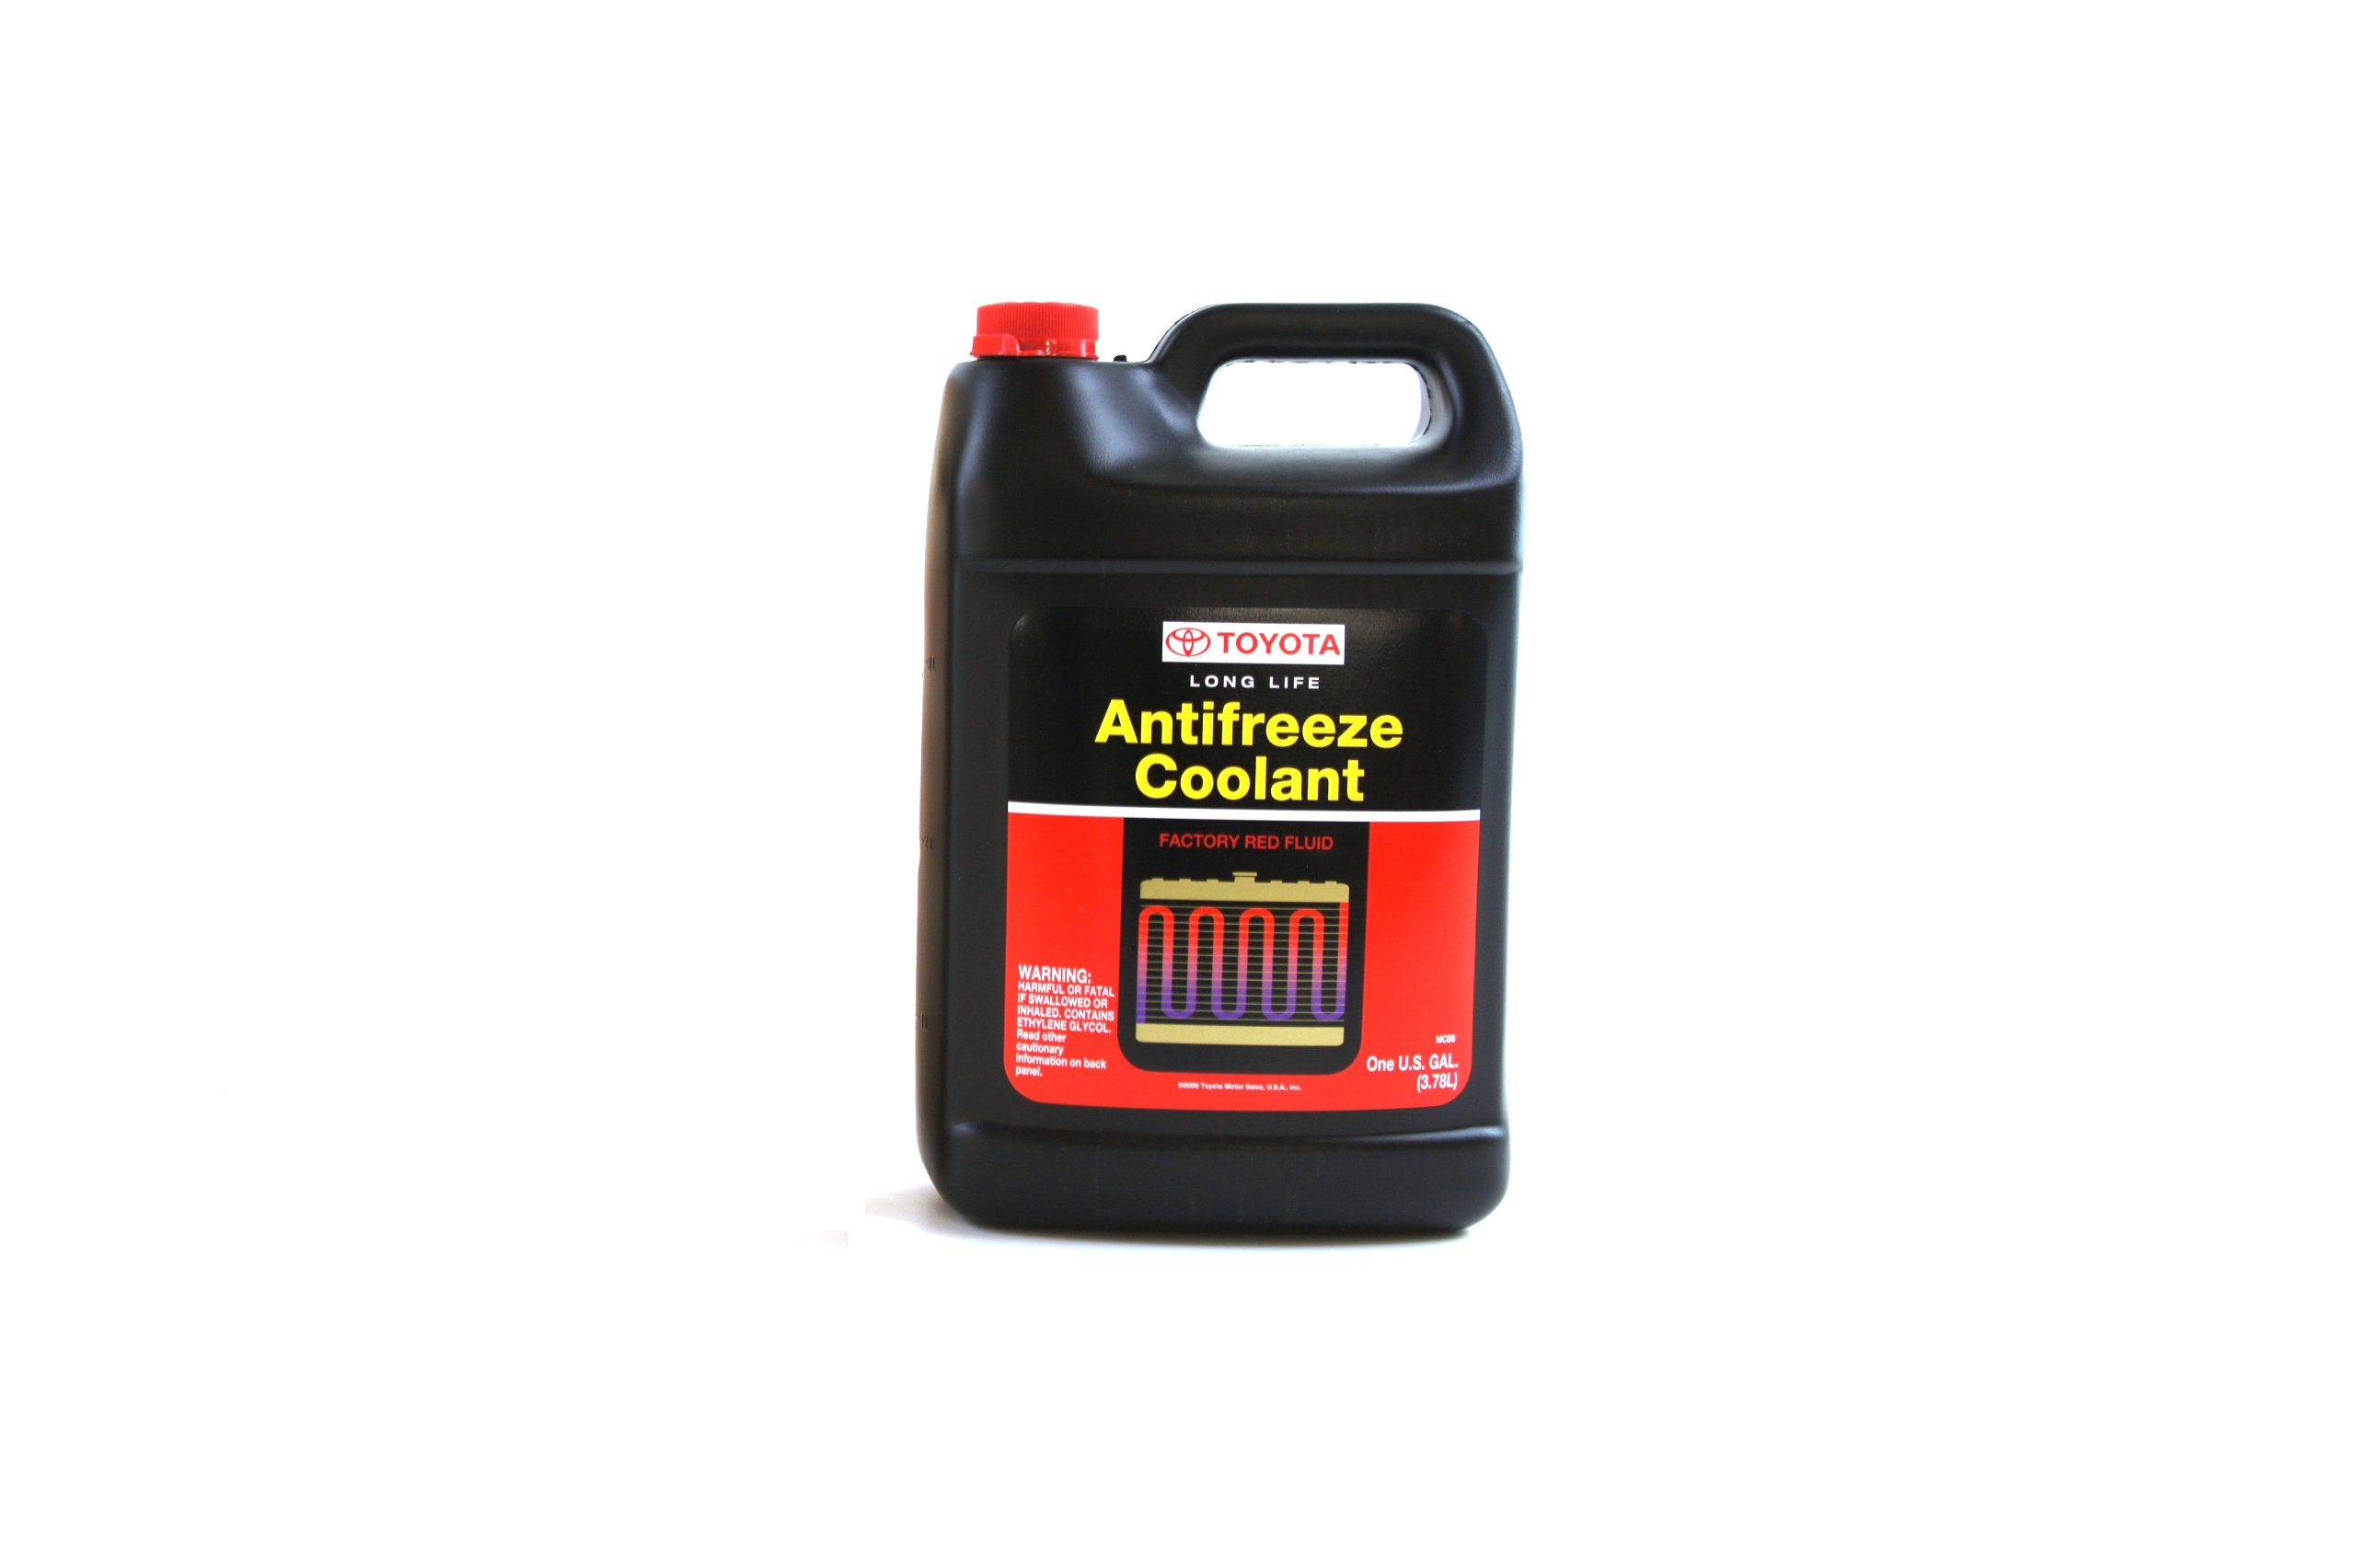 Toyota Genuine Fluid 00272-1LLAC Long Life Coolant - 1 Case (6 single gallon containers in case) by Toyota